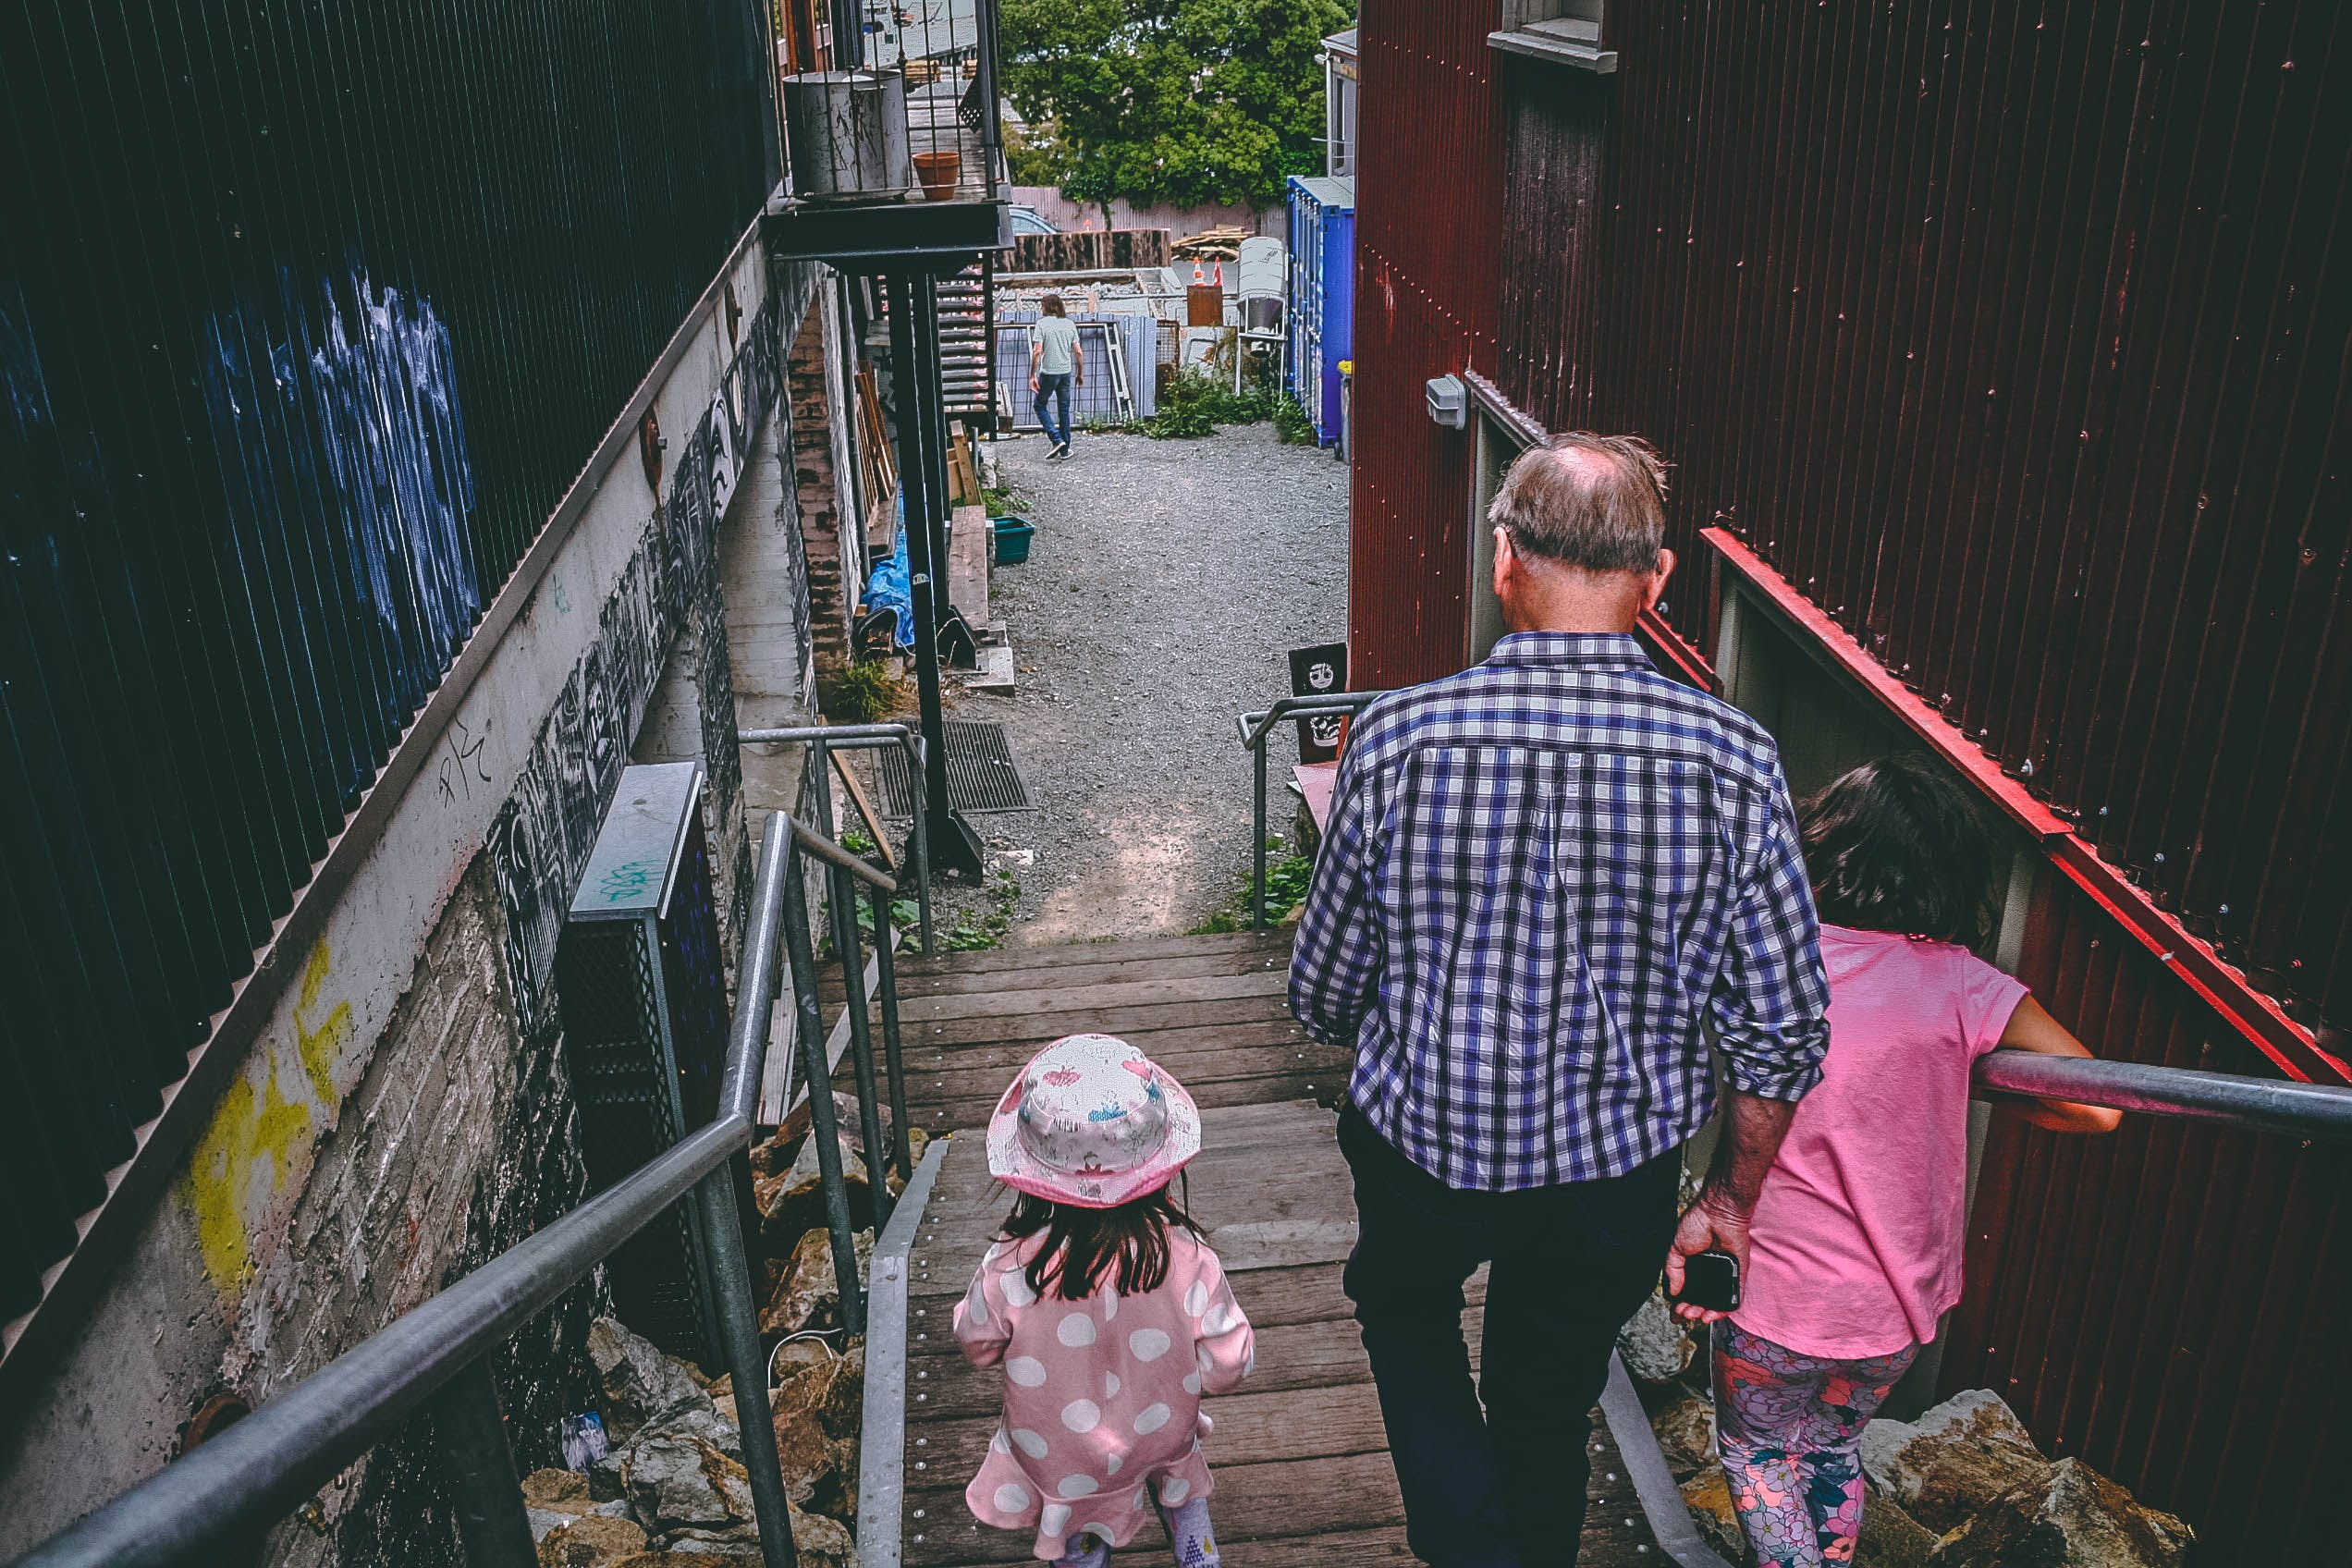 Man and Two Girls Walking Down on Stairs